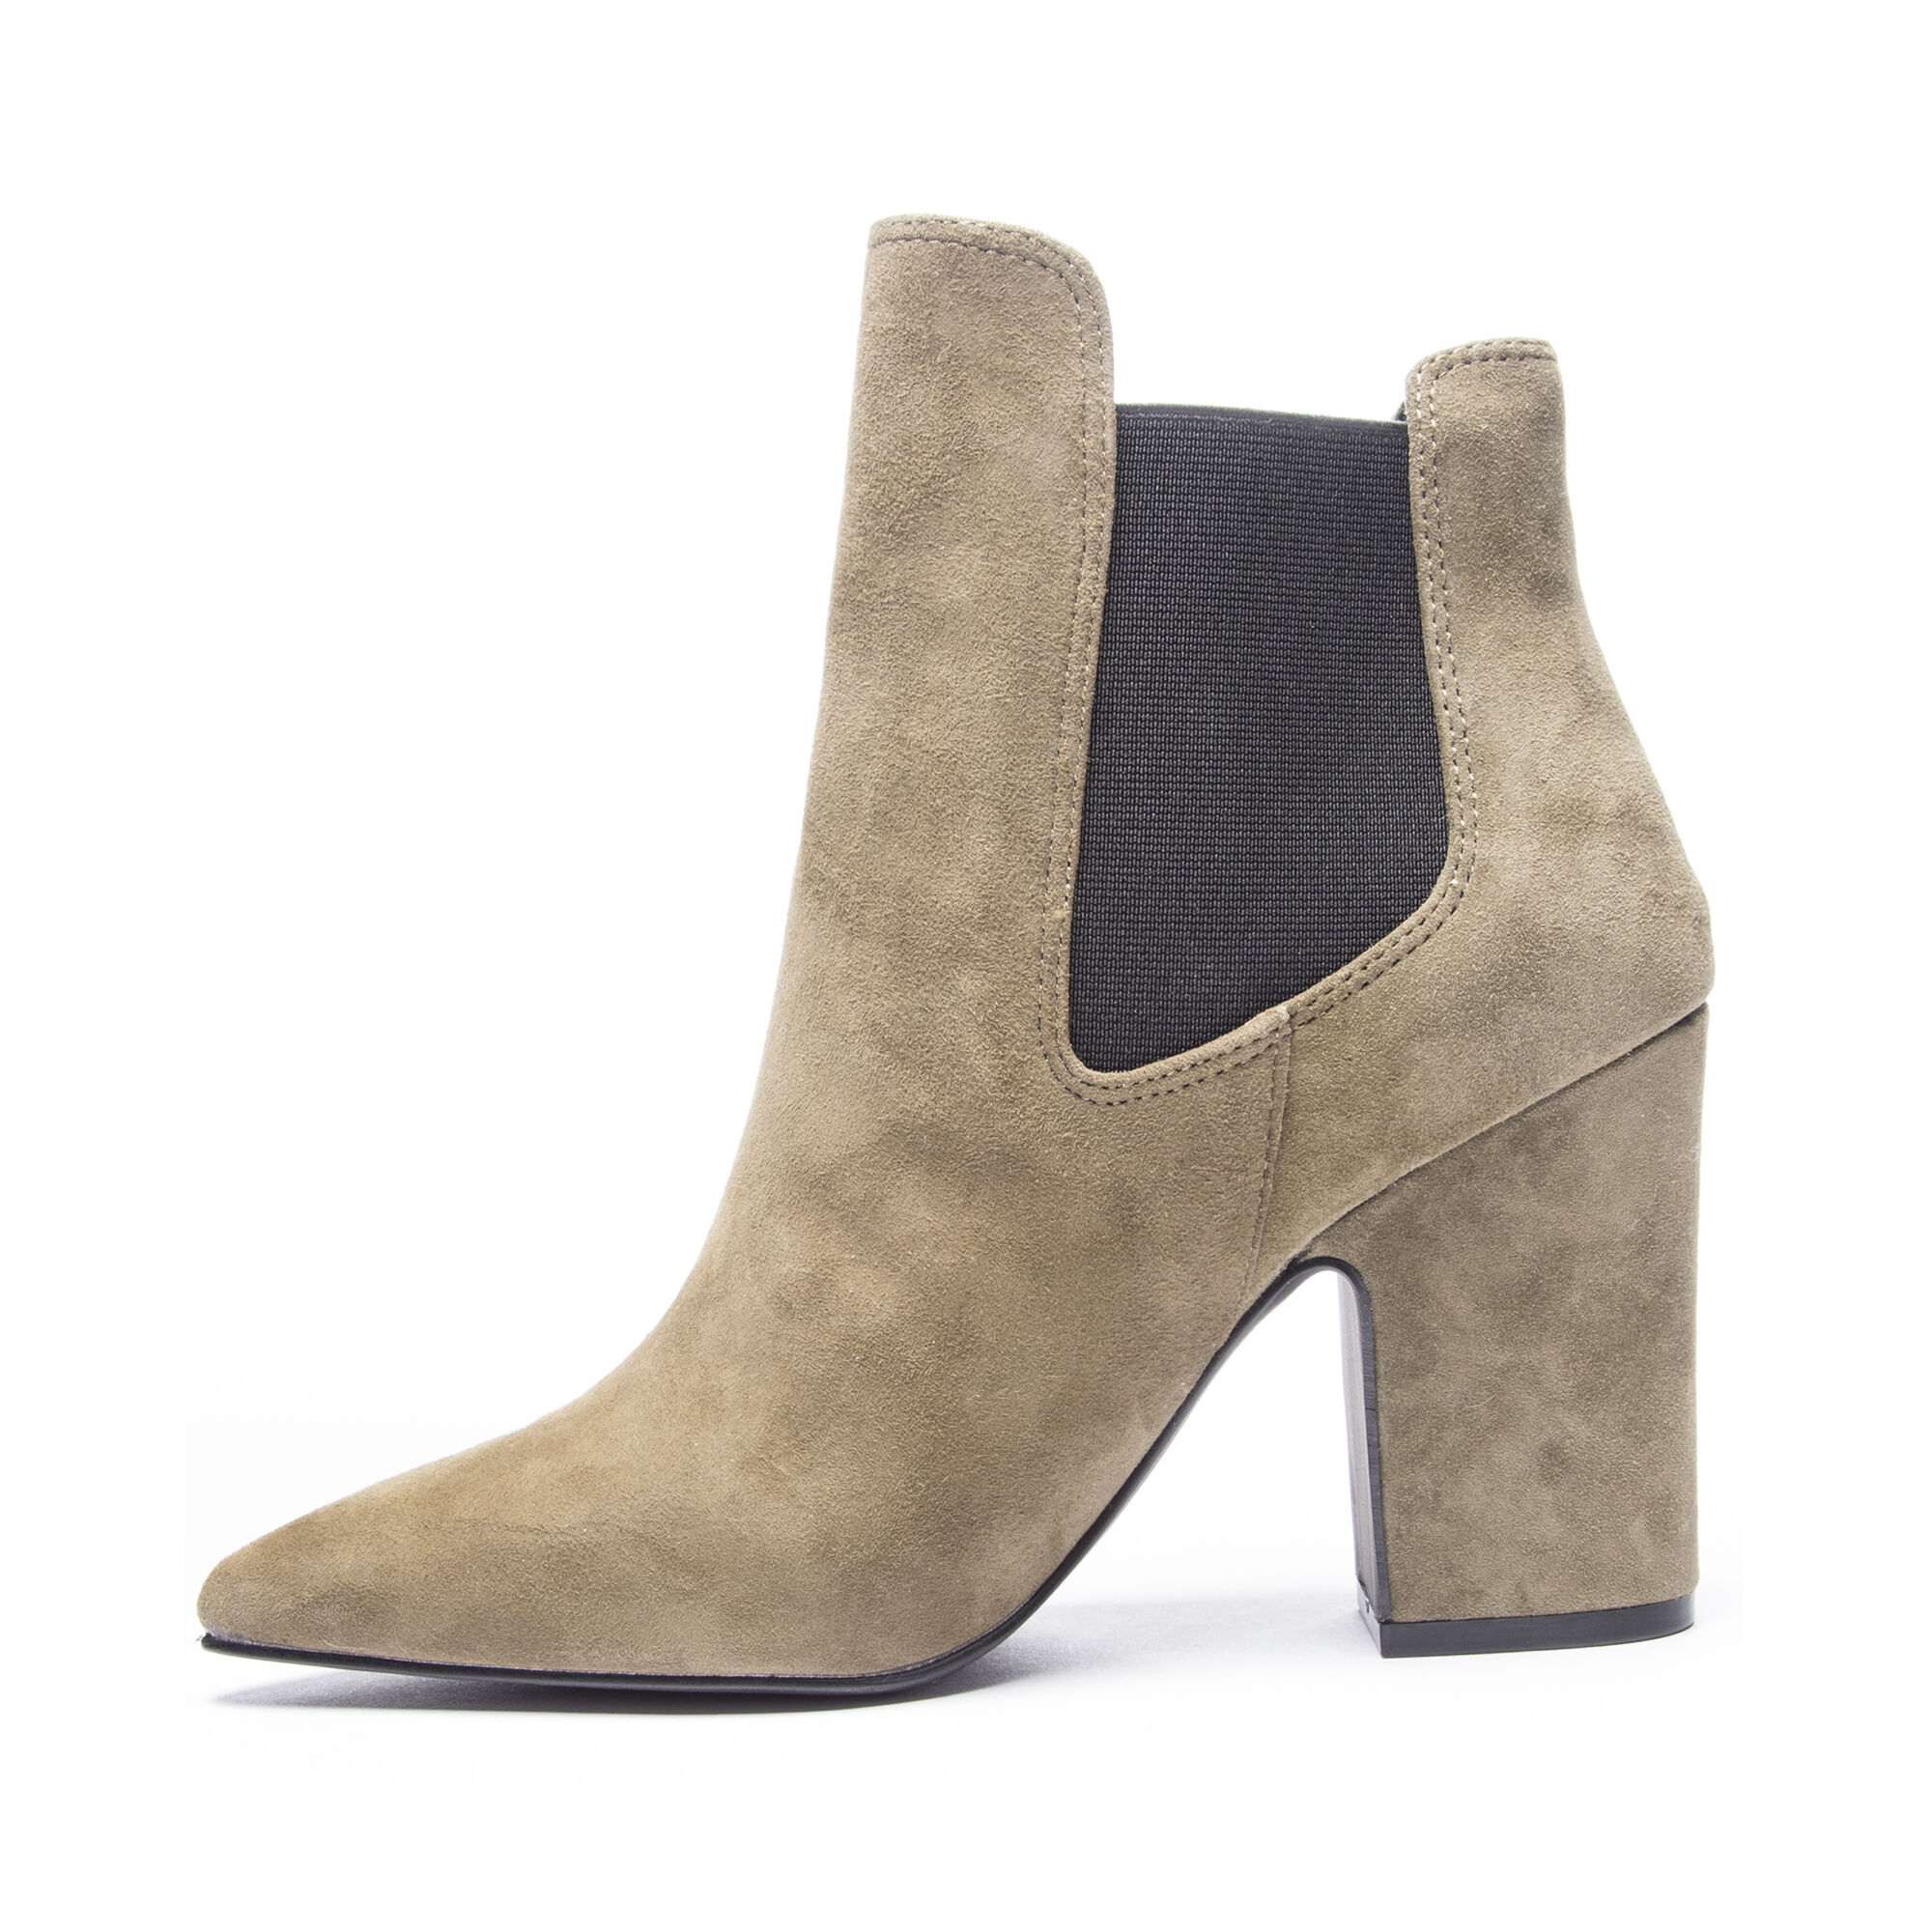 dfe22d5b5e Starlight Bootie - Pointed Toe Suede Bootie